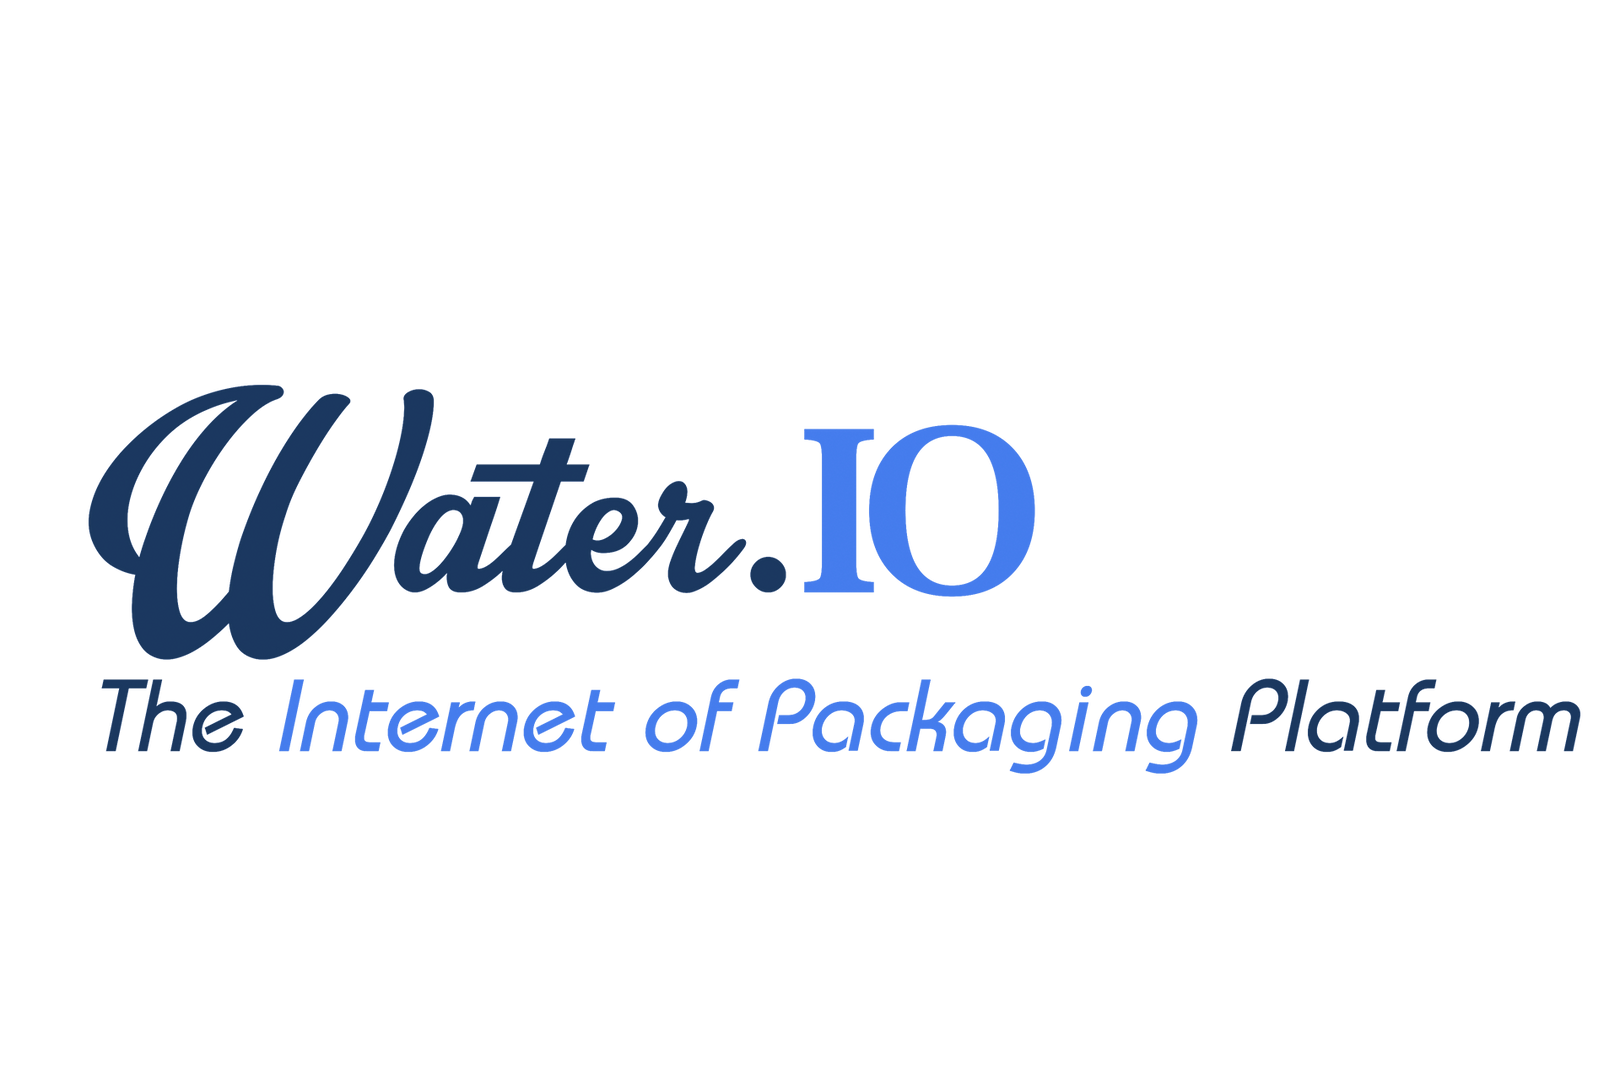 water.io2.png